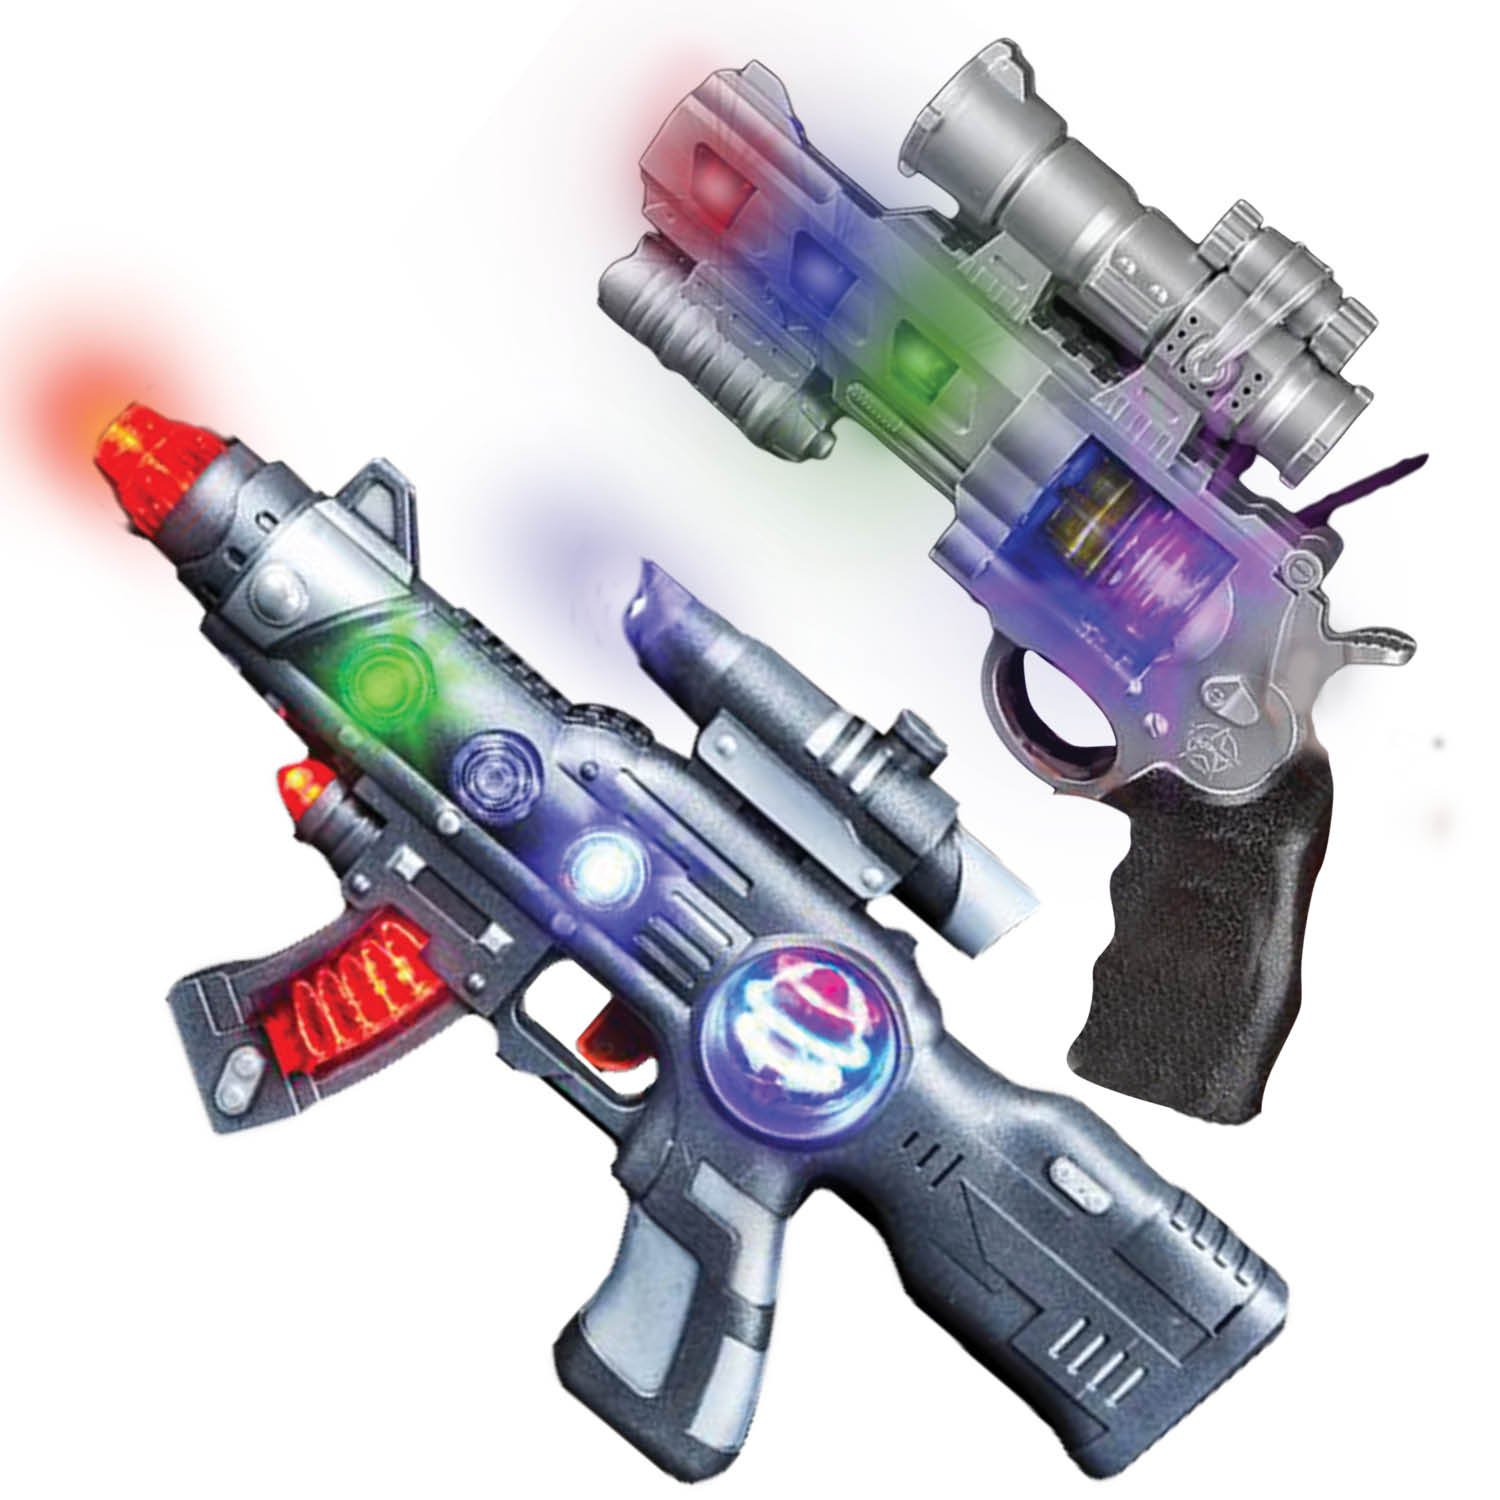 LED Light Up Toy Gun Set by Art Creativity - Super Ray Gun Blasters with Colorful Flashing LEDs & Sound - Cool Play Toys for Boys and Girls - Includes 12.5 Assault Rifle, 9 Hand Pistol and Batteries ArtCreativity